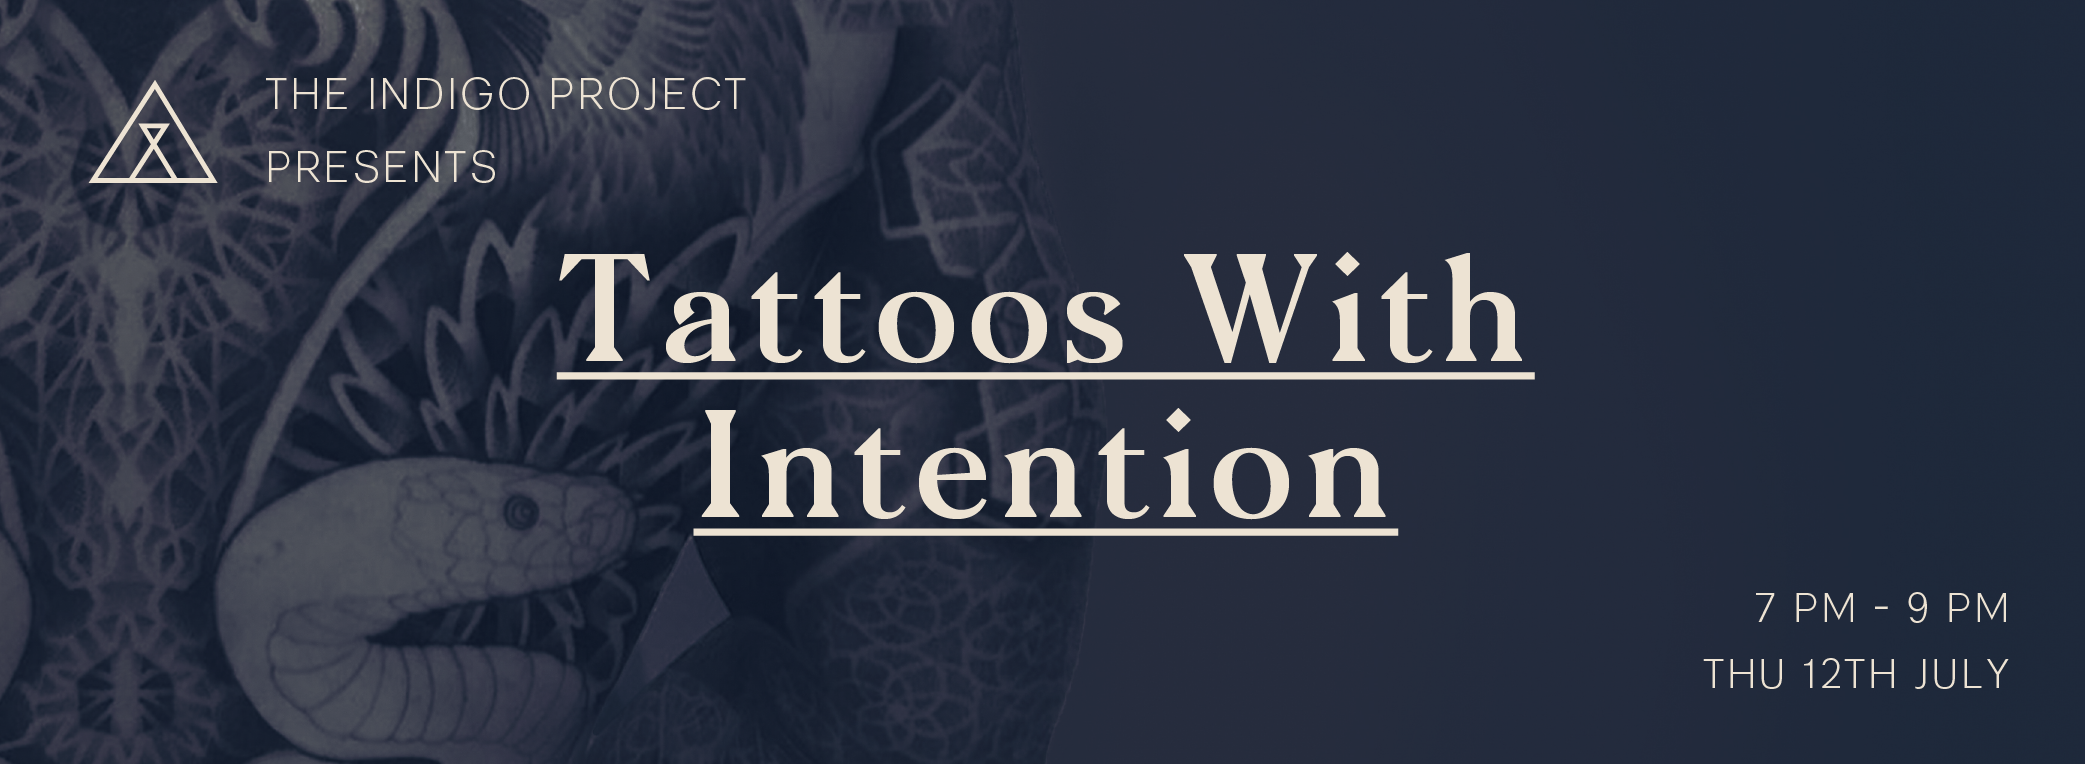 TATTOOS_Web Header